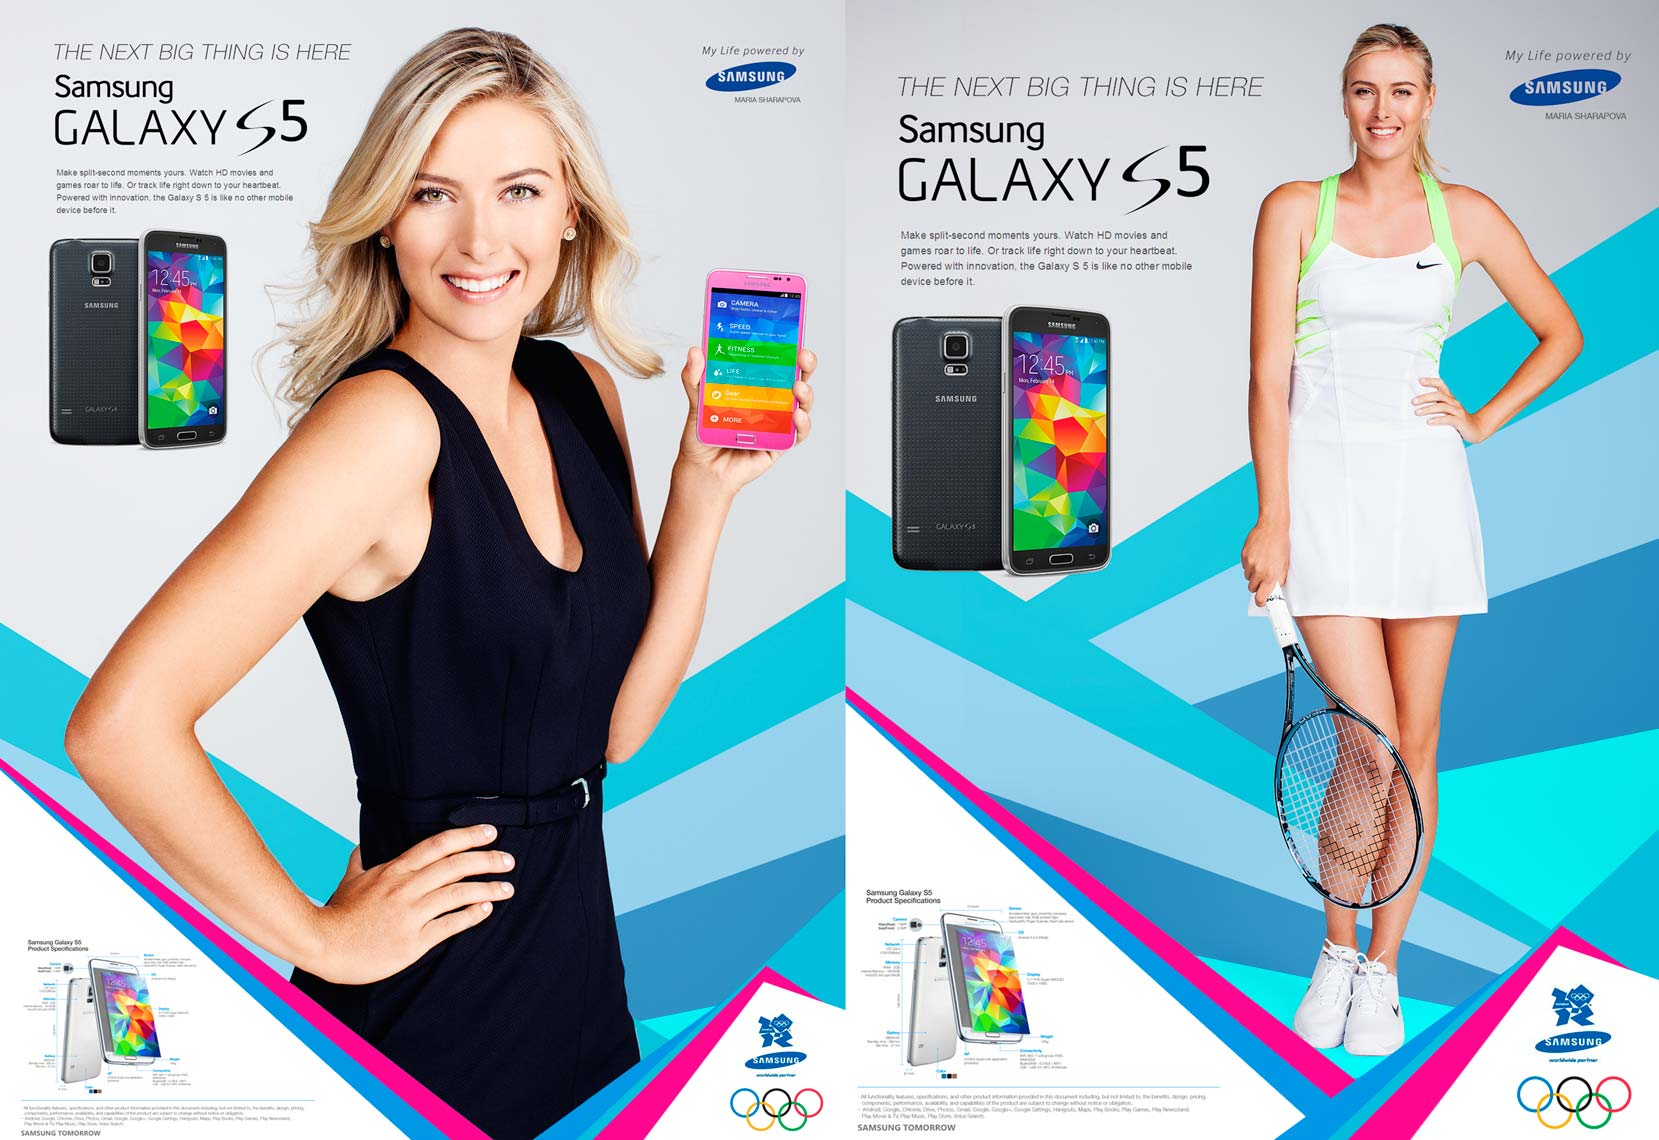 Chris-Hunt-Photography-Advertising-Maria-Sharapova-Samsung-423